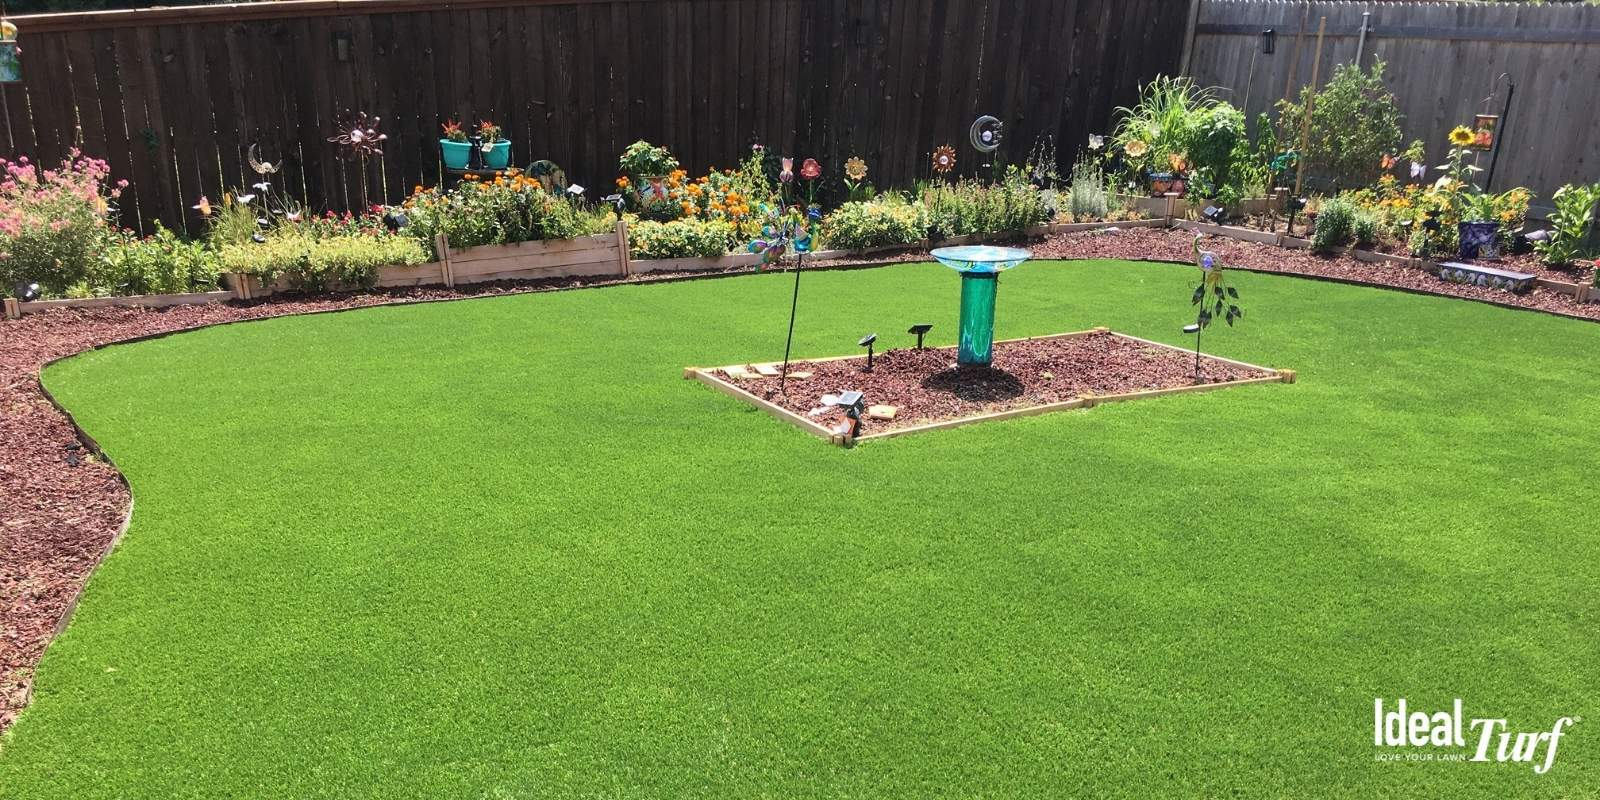 What are the benefits of artificial grass?